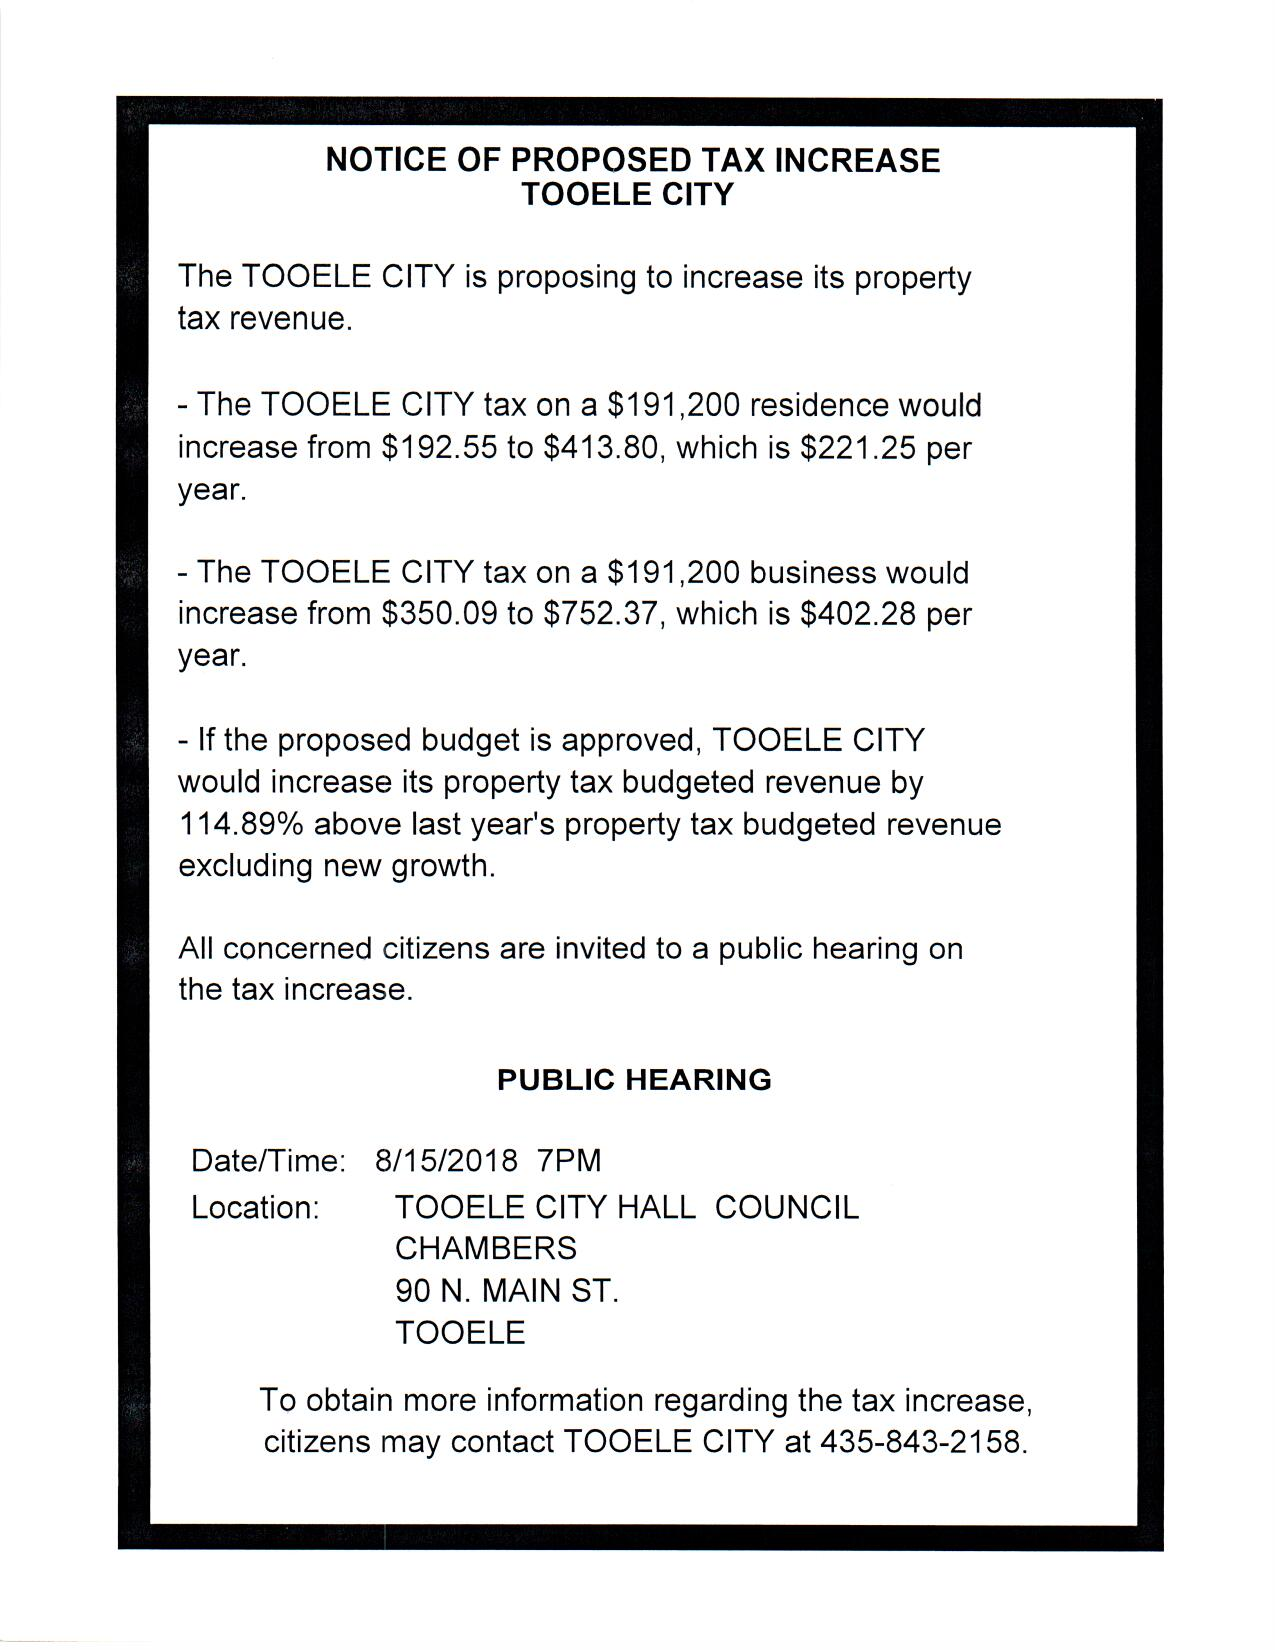 Notice of Proposed Tax Increase Tooele City 2018